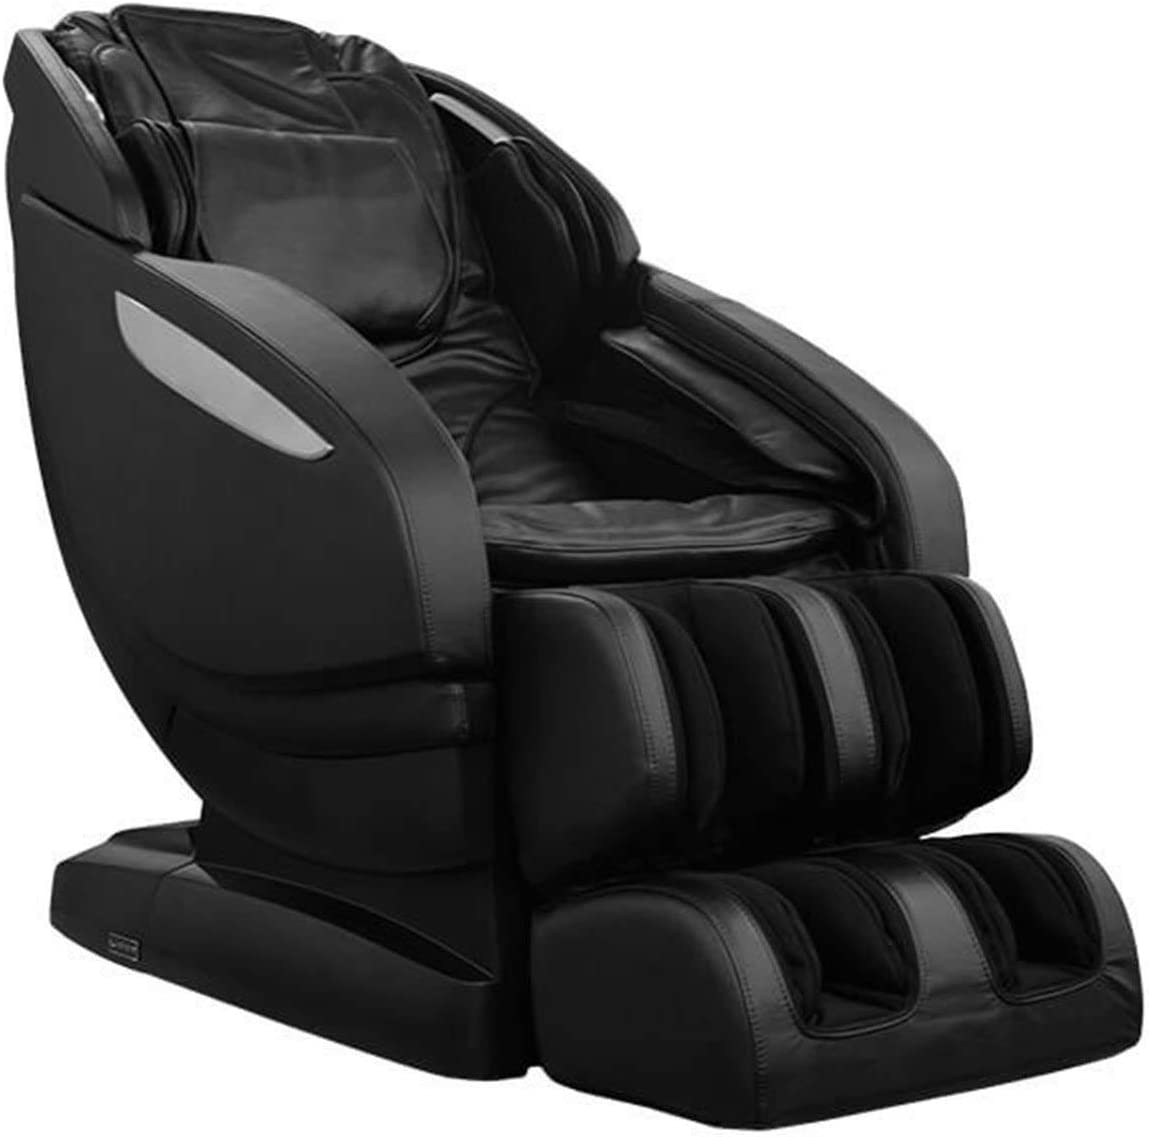 Infinity Altera Full Body Zero Gravity Massage Chair, Adjustable Air Intensity, Body Scanning, Reflexology, Shiatsu Technique - Black, Includes in Home delivery and Assembly